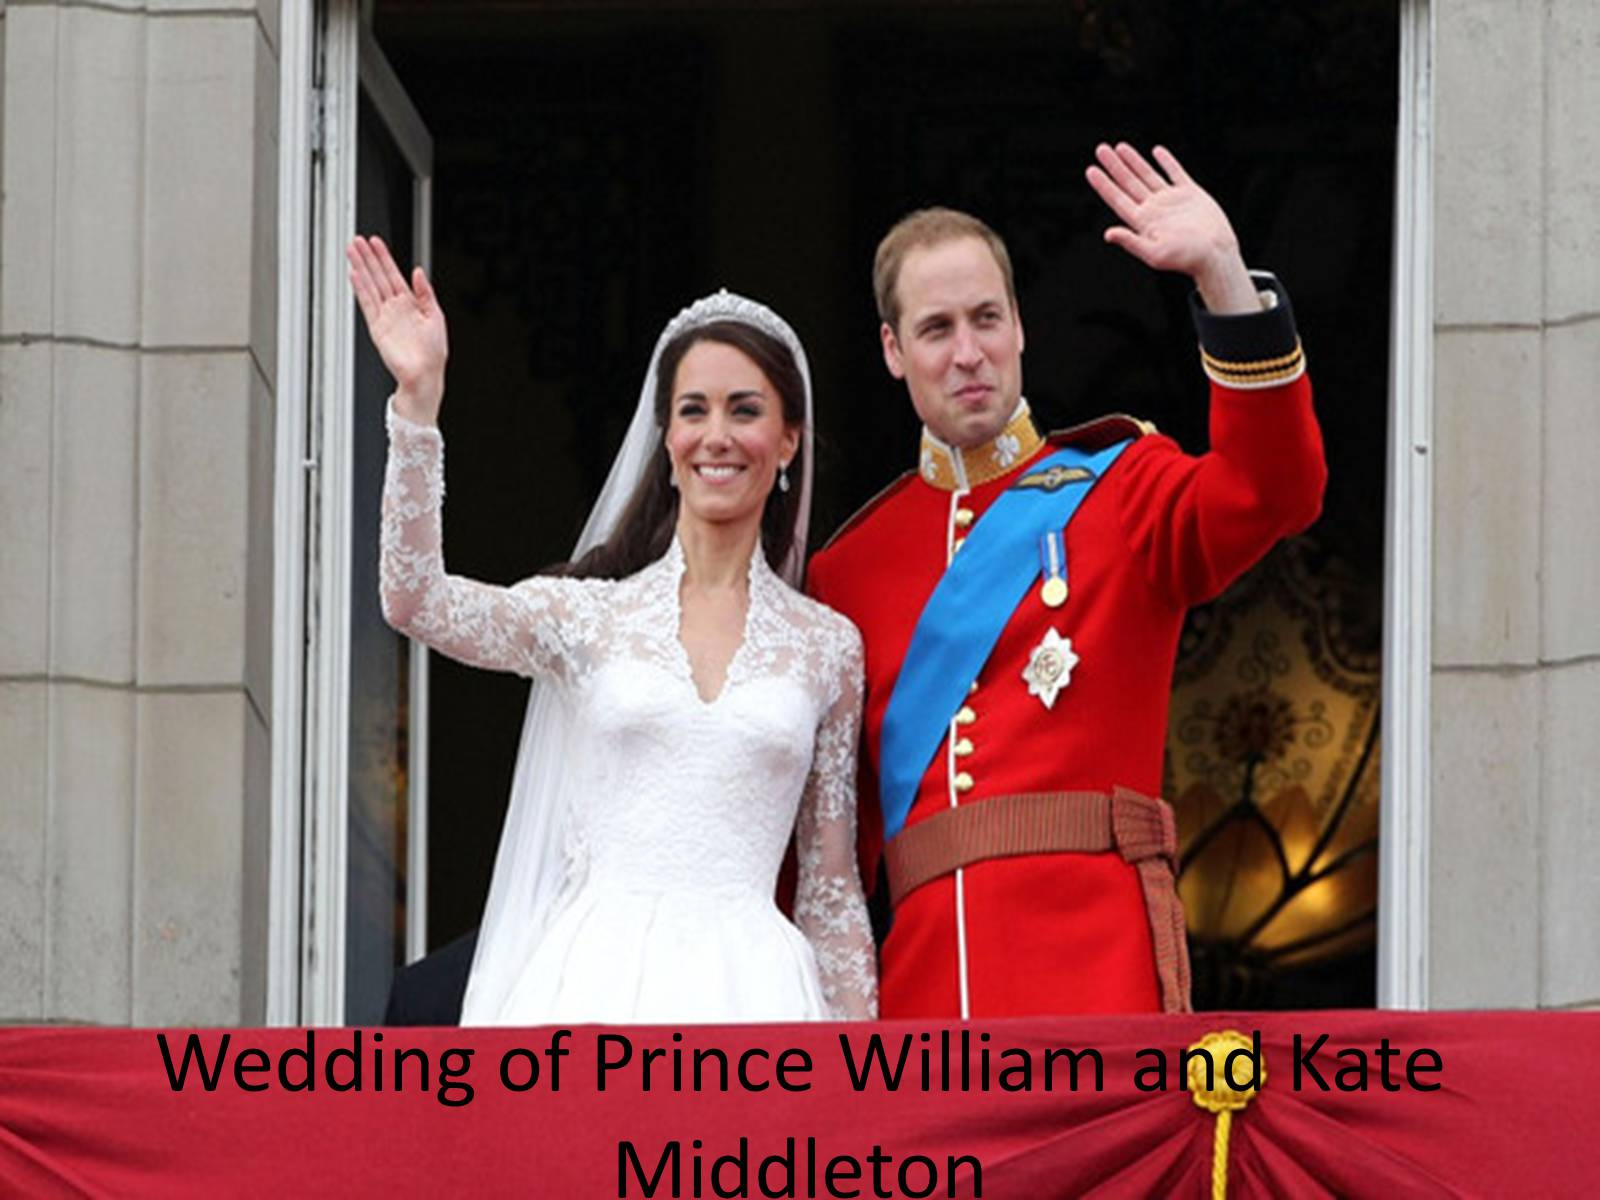 Презентація на тему «Wedding of Prince William and Kate Middleton»